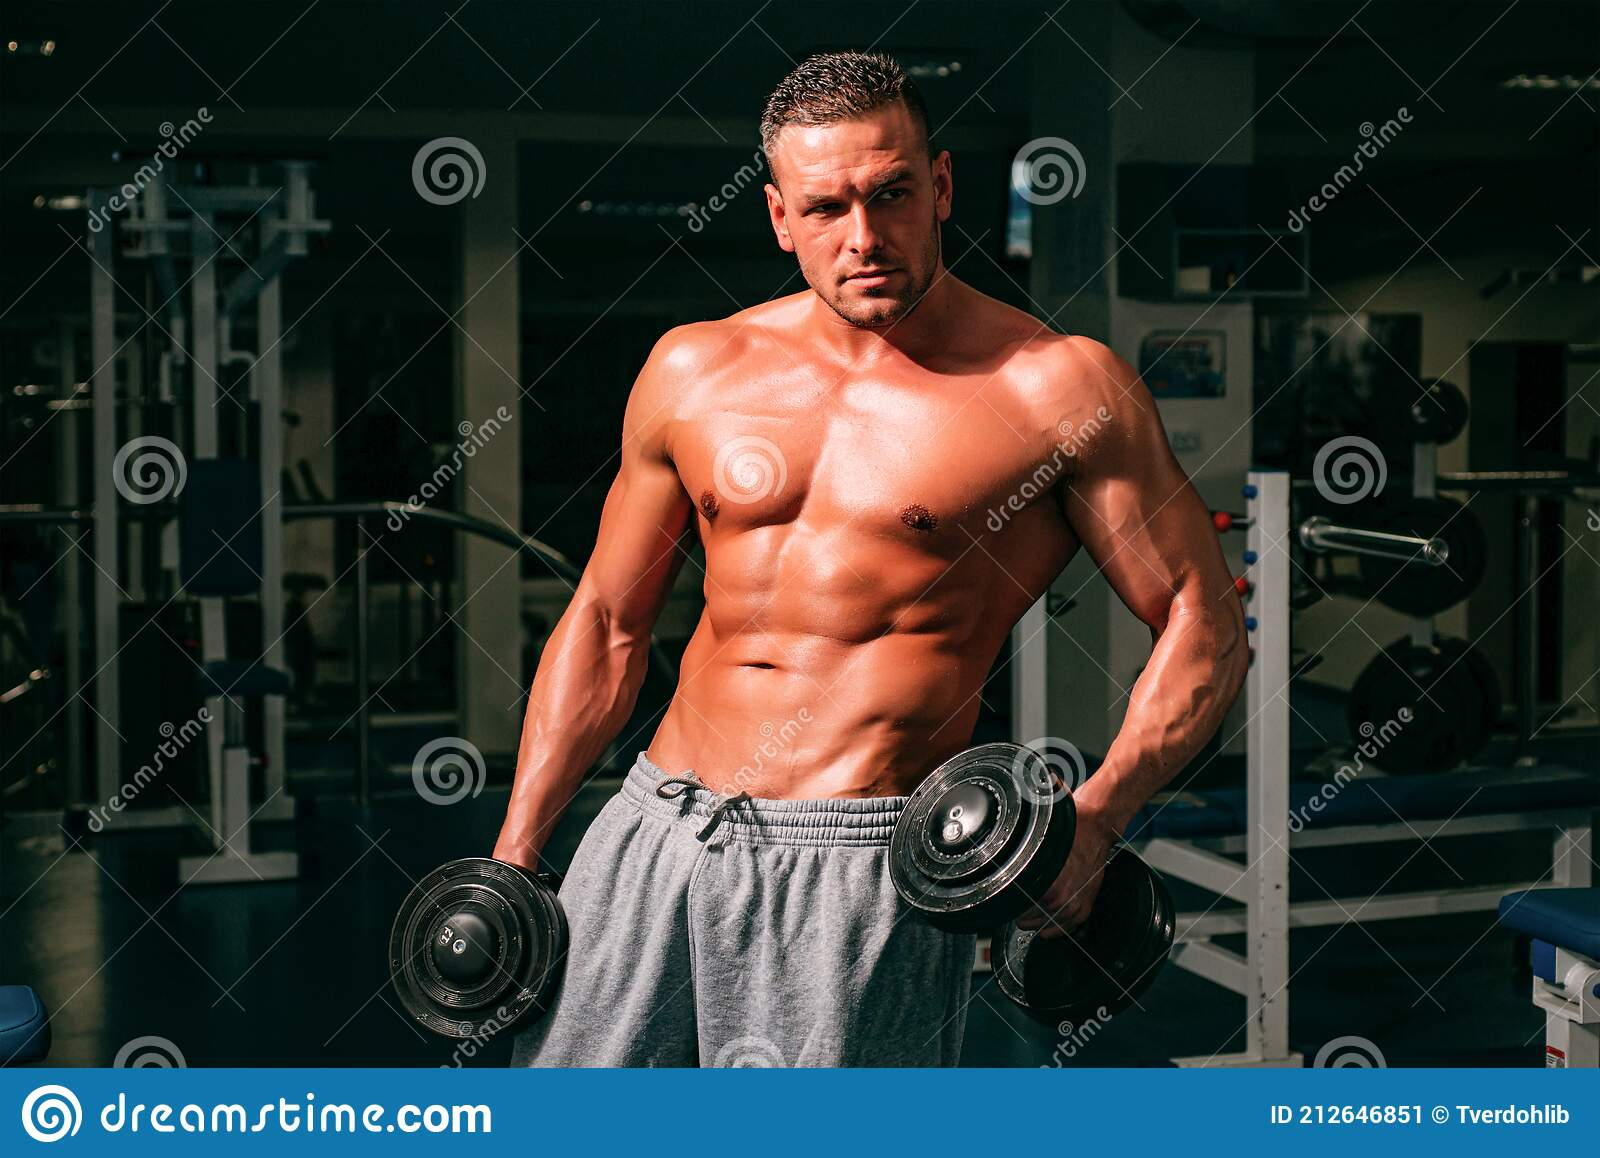 Naked athletic body Bodybuilder Training With Dumbbells Sportsman With Naked Torso Sporty Workout Athletic Body Stock Image Image Of Exercising Strength 212646851